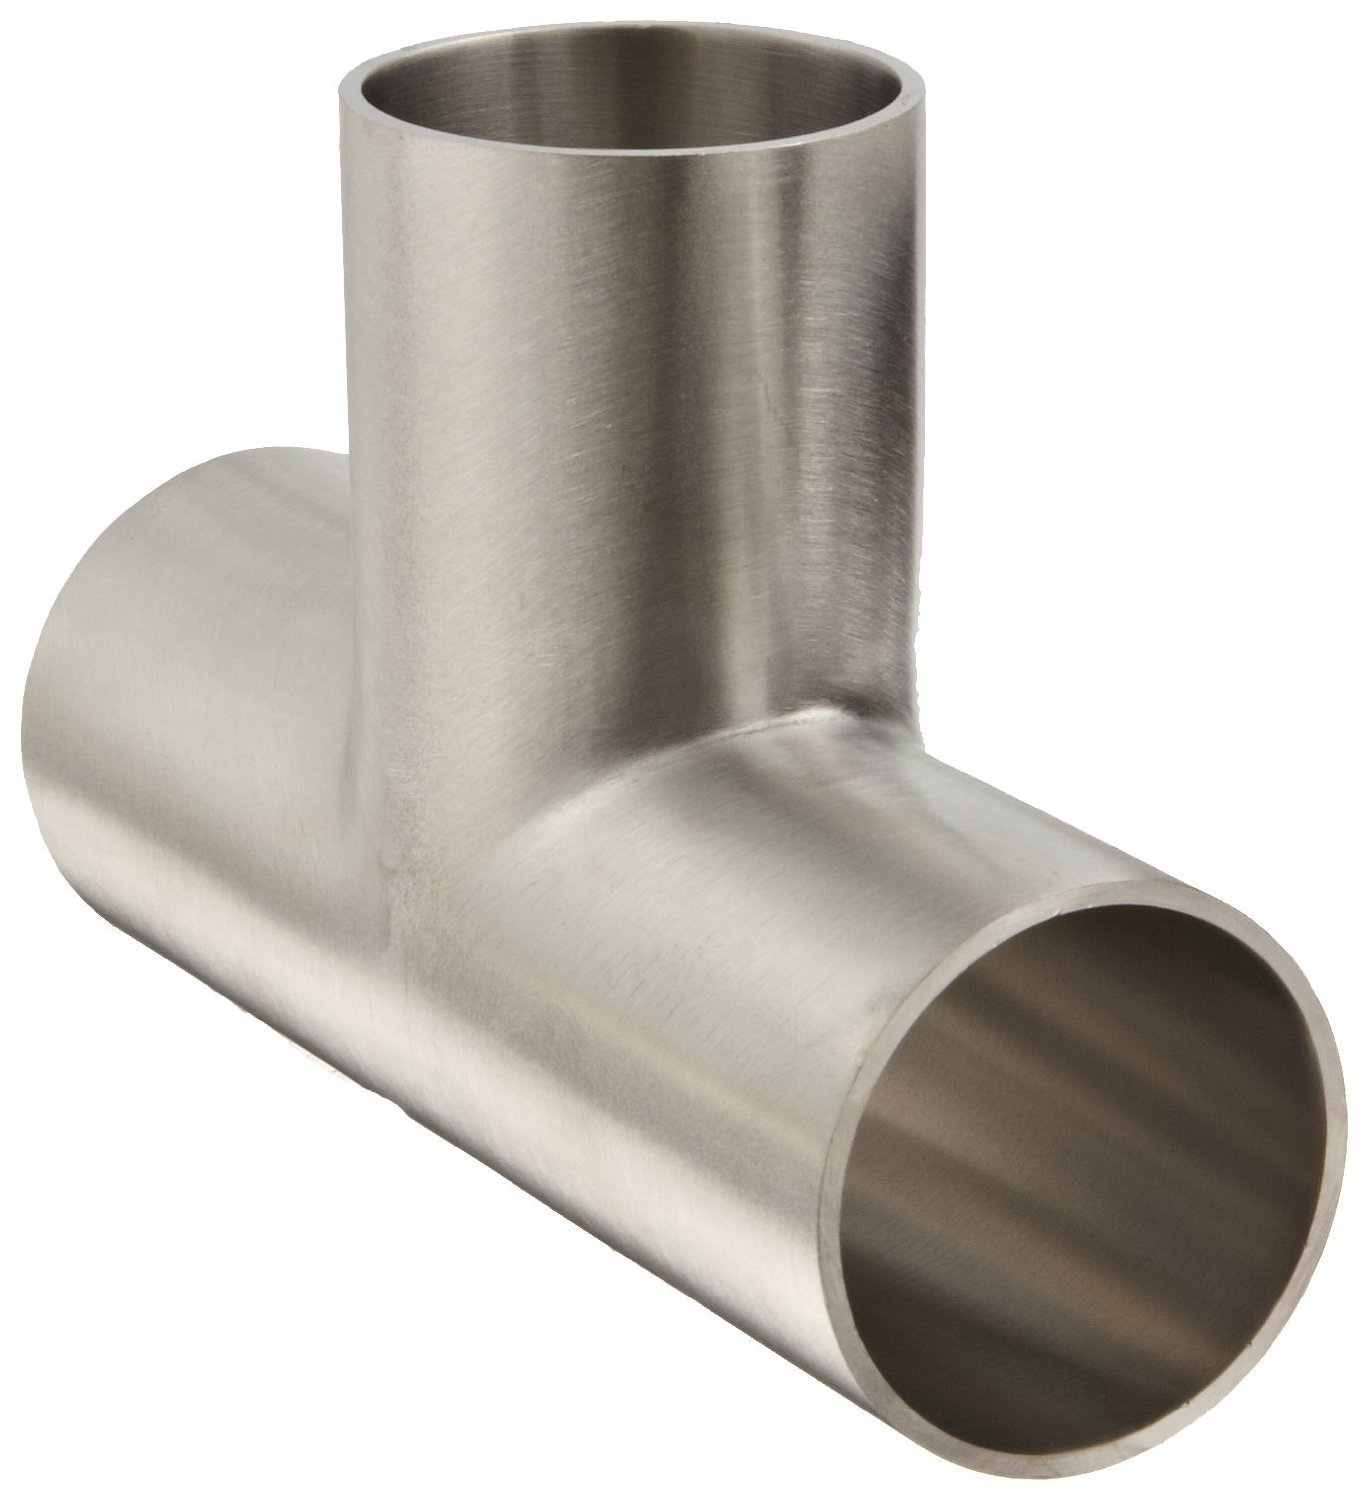 Dixon B7W-G150P Stainless Steel 304 Polished Fitting, Weld Long Tee, 1-1/2'' Tube OD